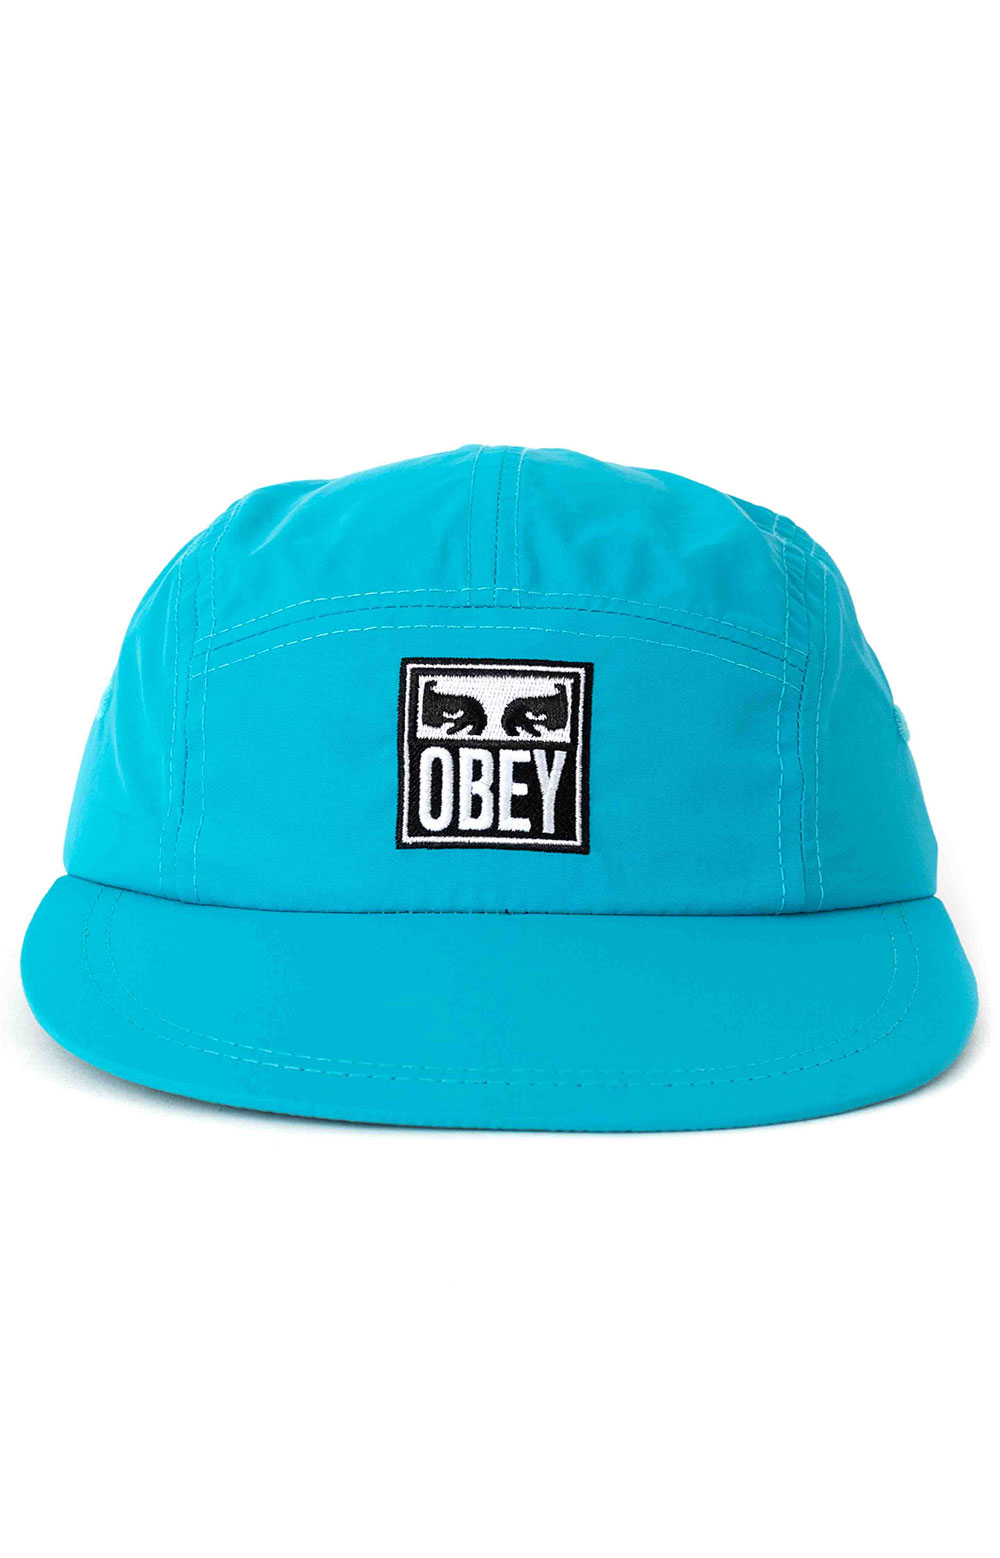 Vanish 5 Panel Hat - Teal 2